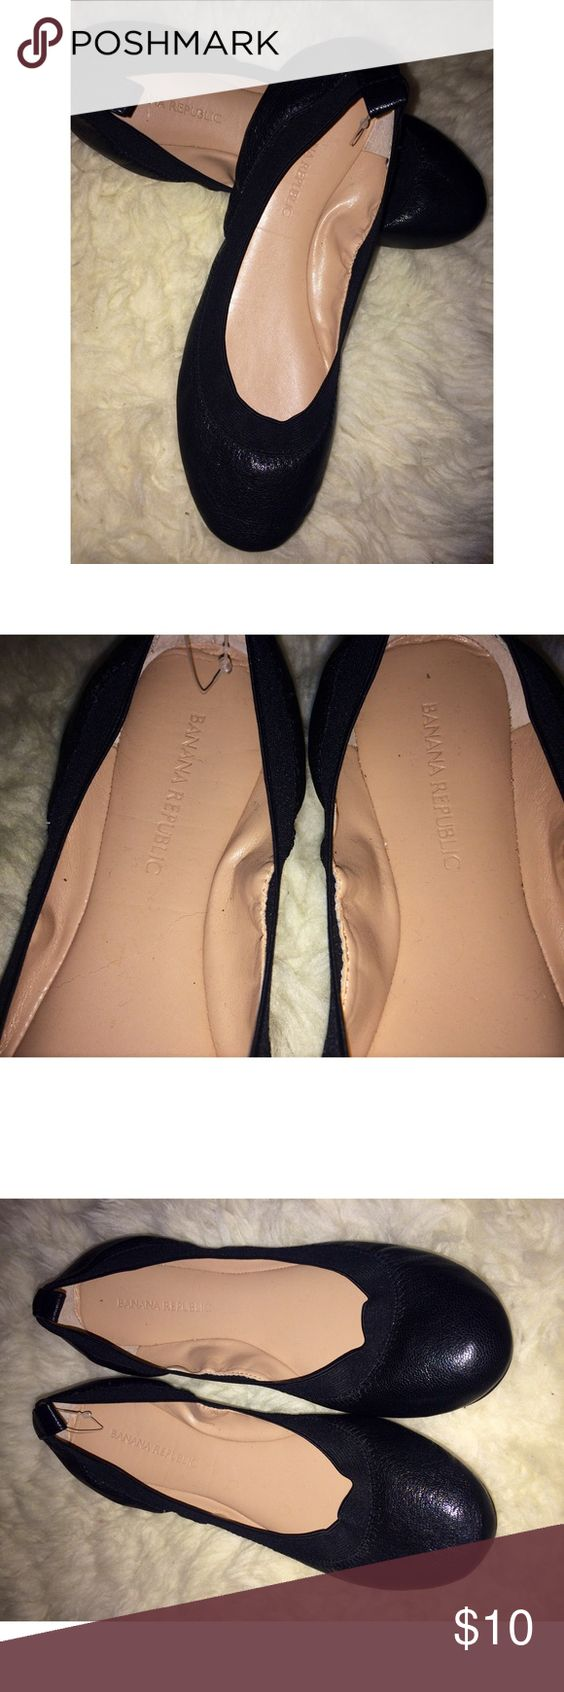 $10💖 black flats from Banana Republic Near Mint Condition⚫️👟✨💖 Banana Republic Shoes Flats & Loafers